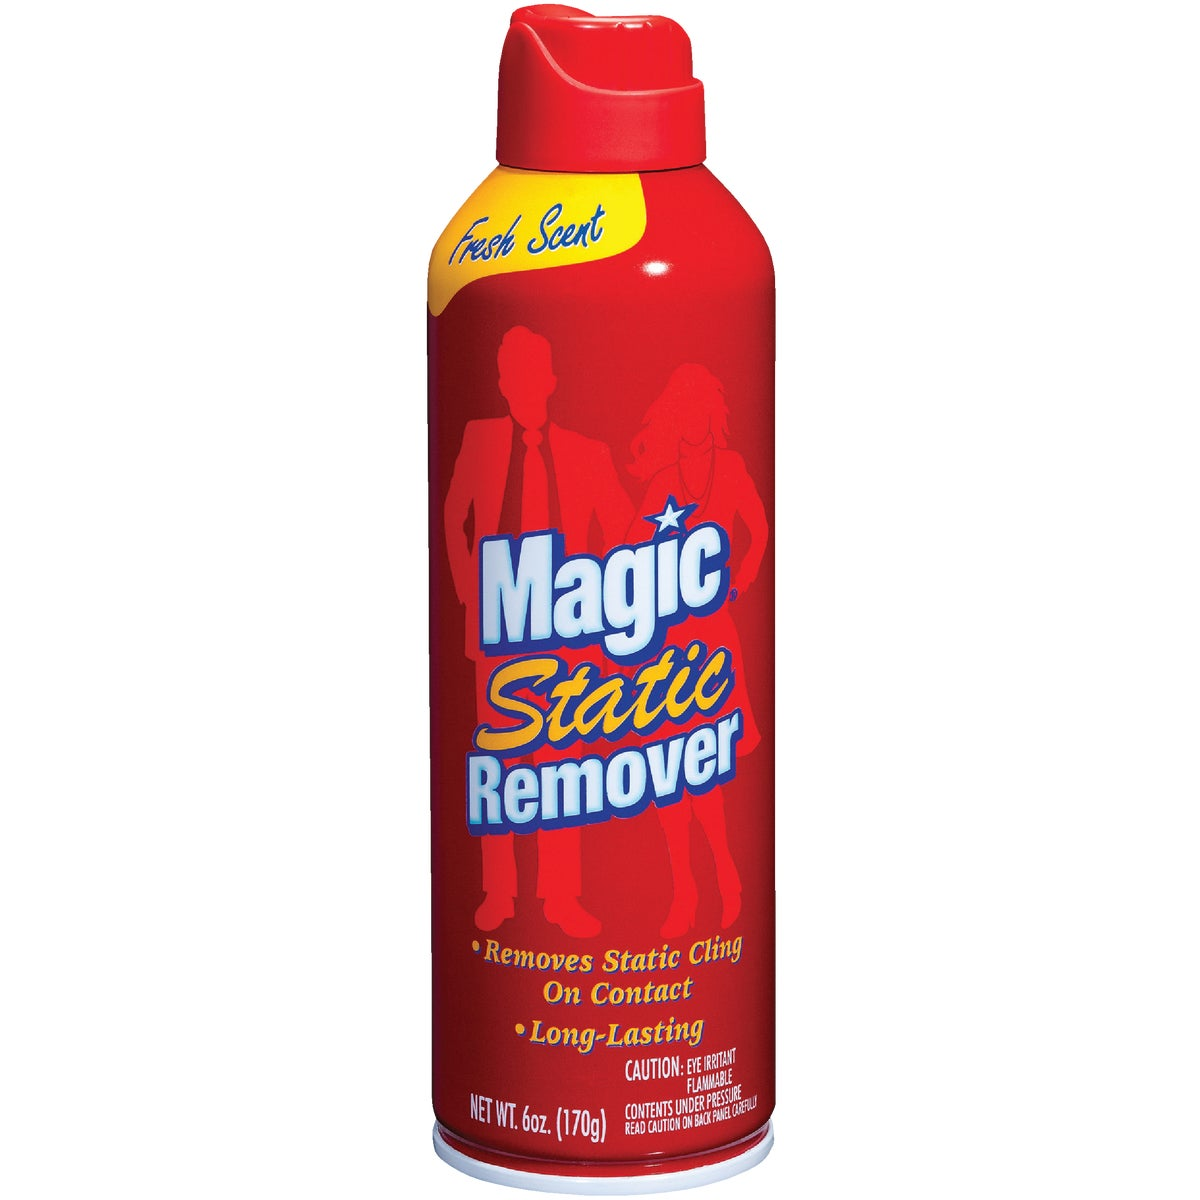 Static Remover